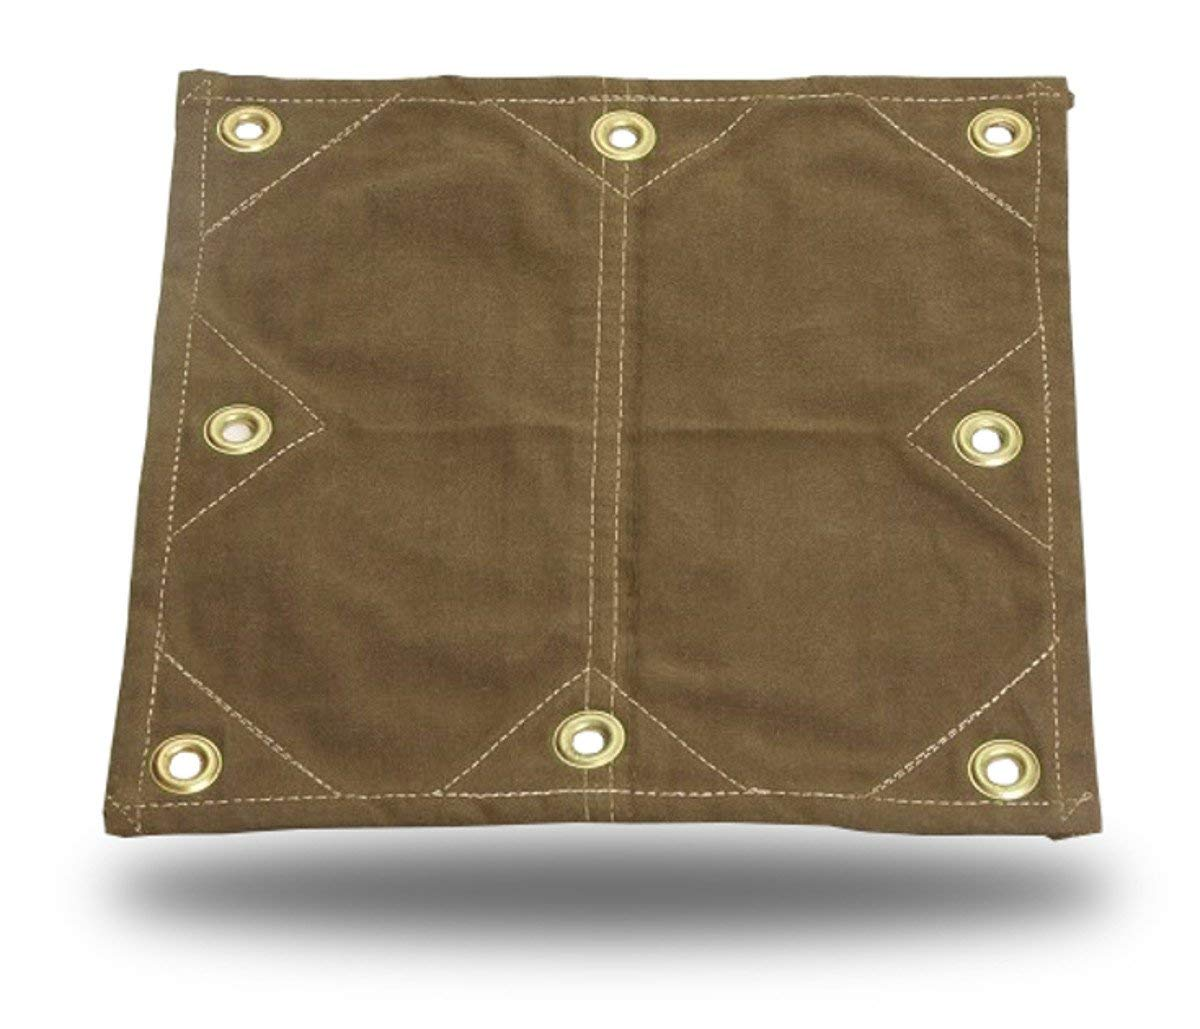 Cheap 12x12 Canvas Tarp, find 12x12 Canvas Tarp deals on line at